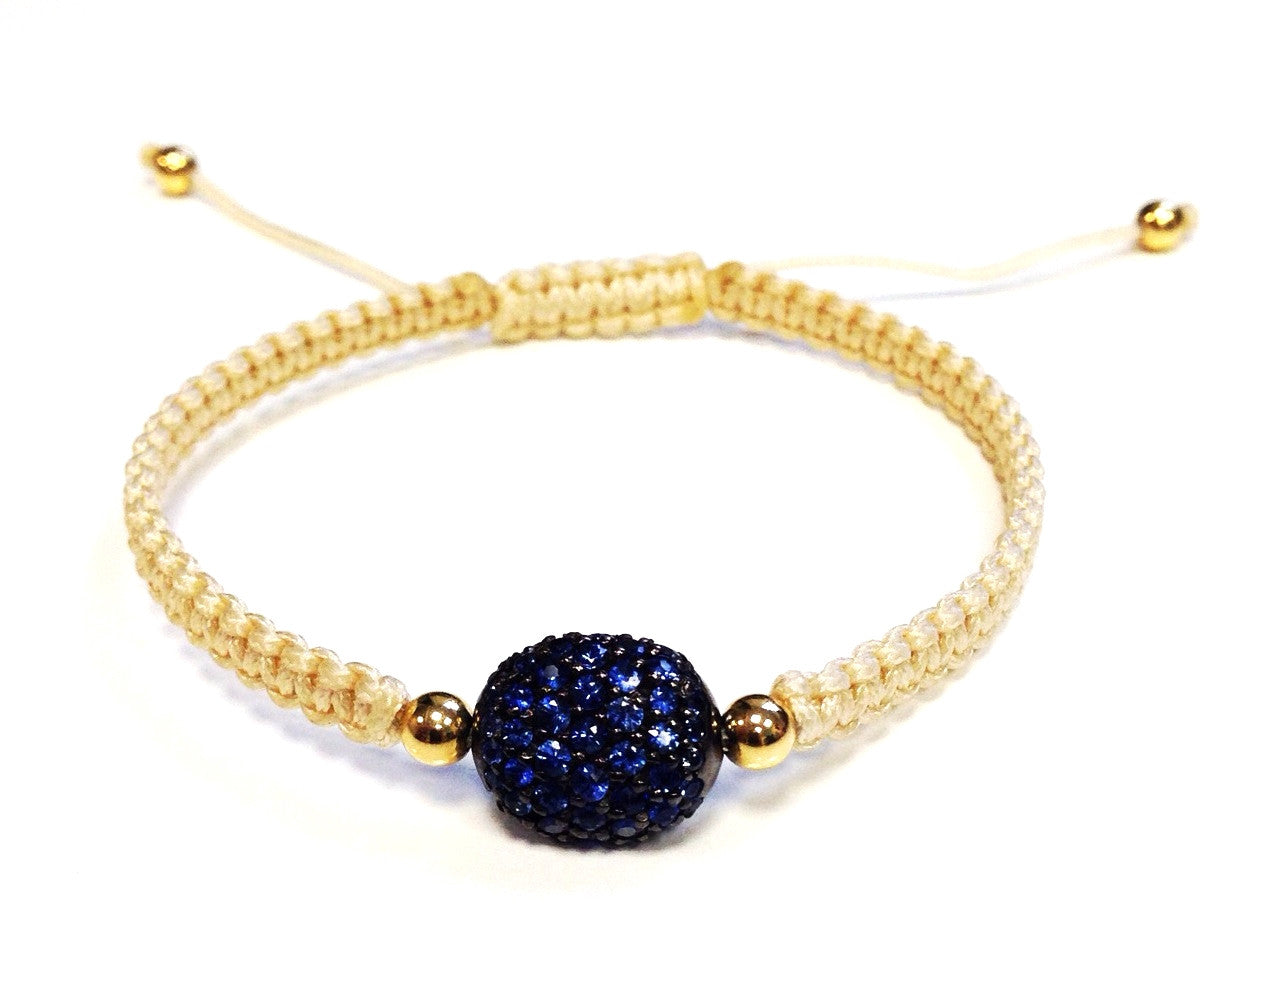 Nautical Bracelet - Badel -  Bracelet - Ora by D'Amore Jewelers